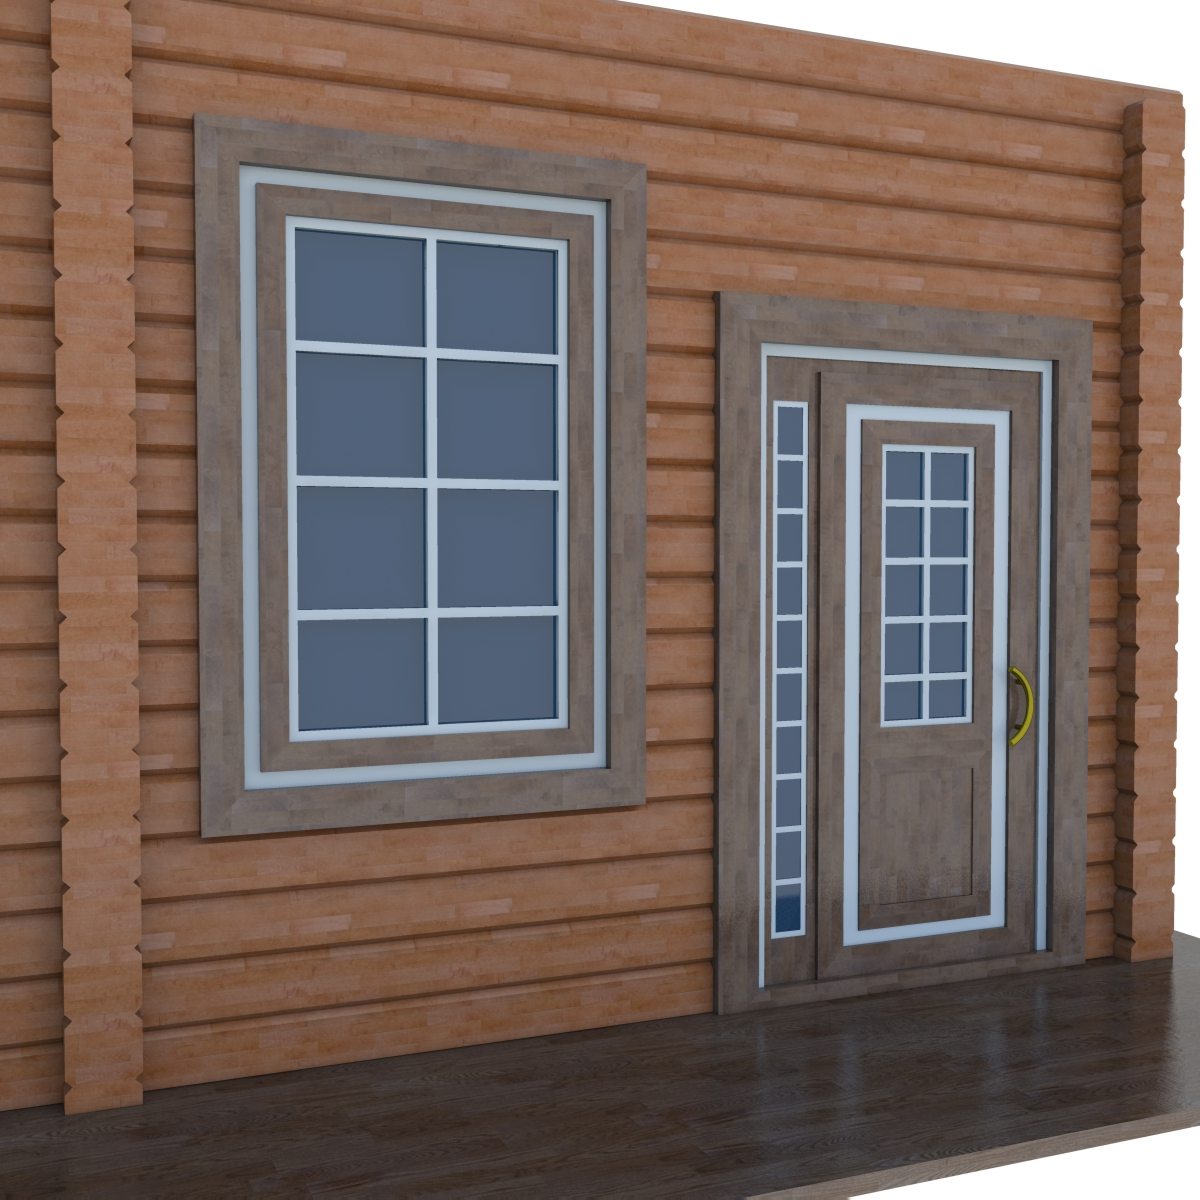 Model of wooden windows and doors two colors by sam 72 for Wooden doors and windows